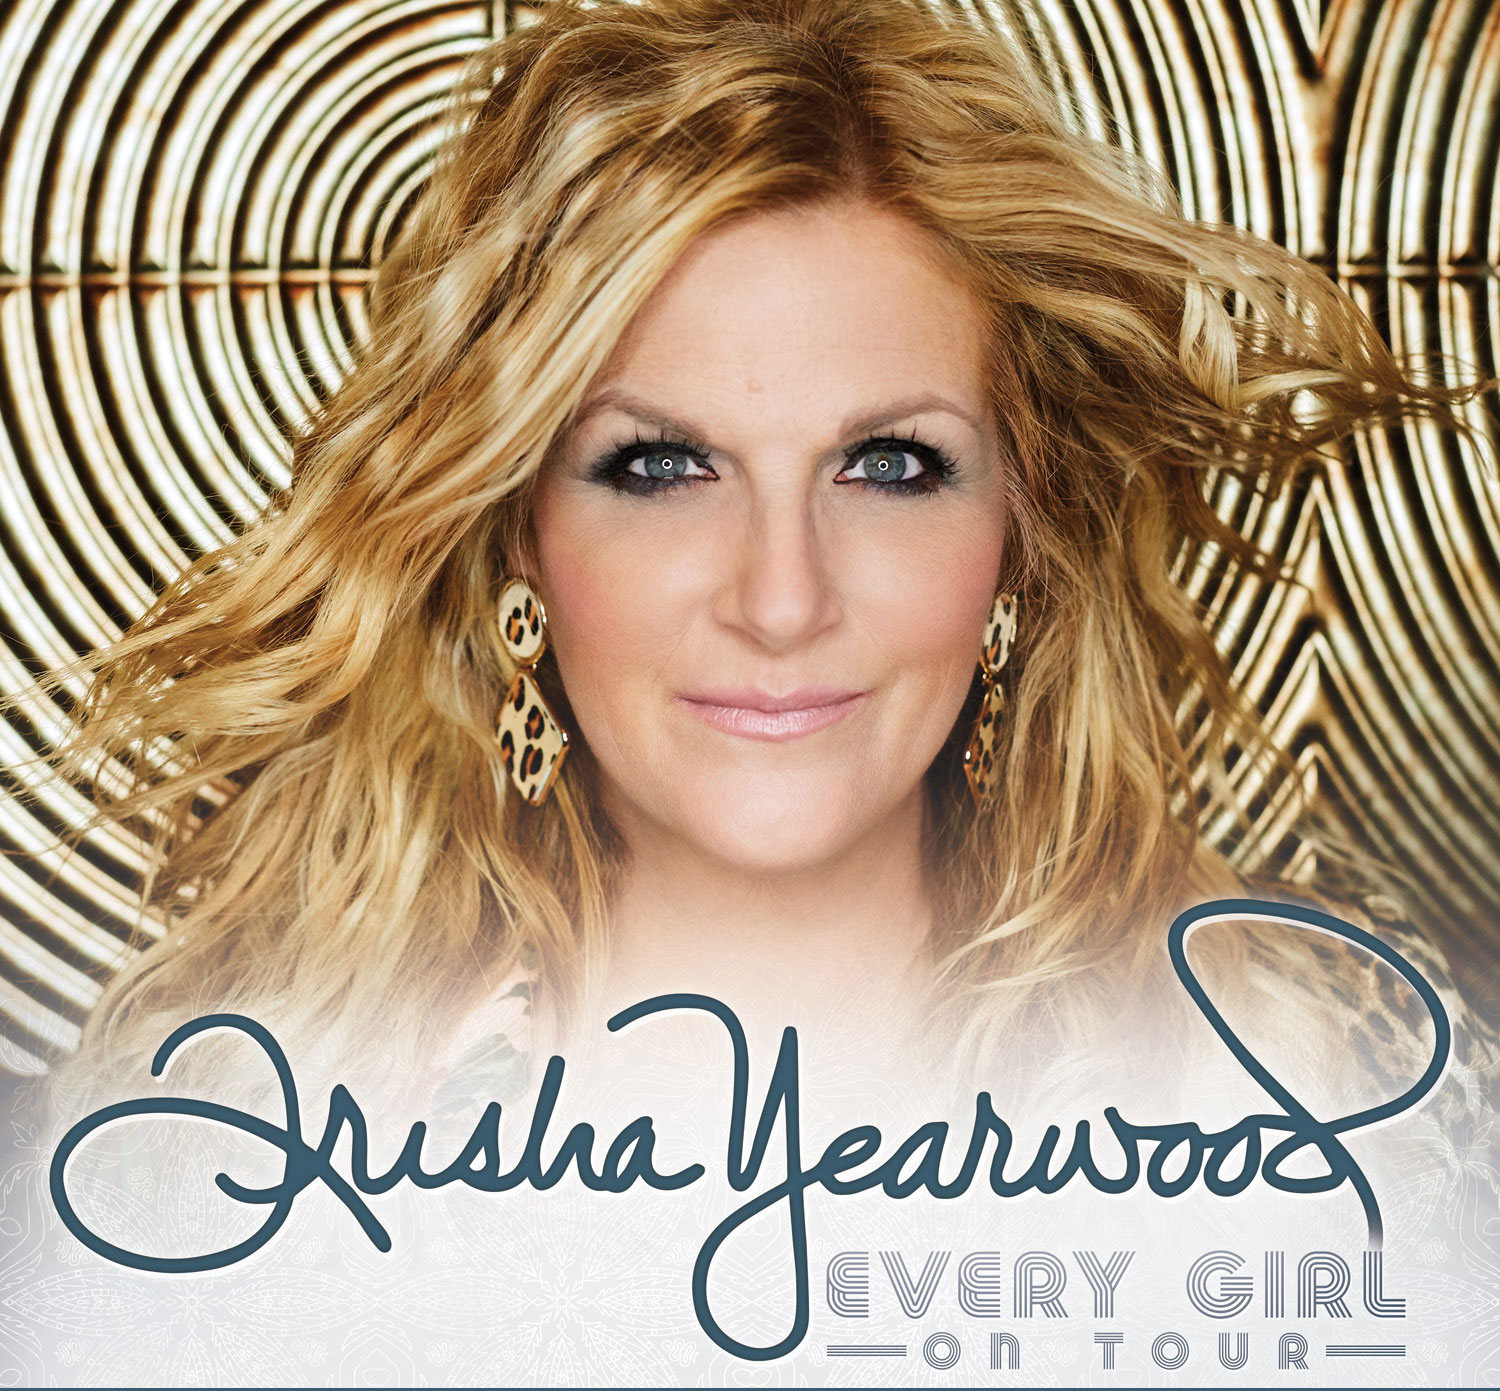 Trisha Yearwood Every Girl on Tour header image